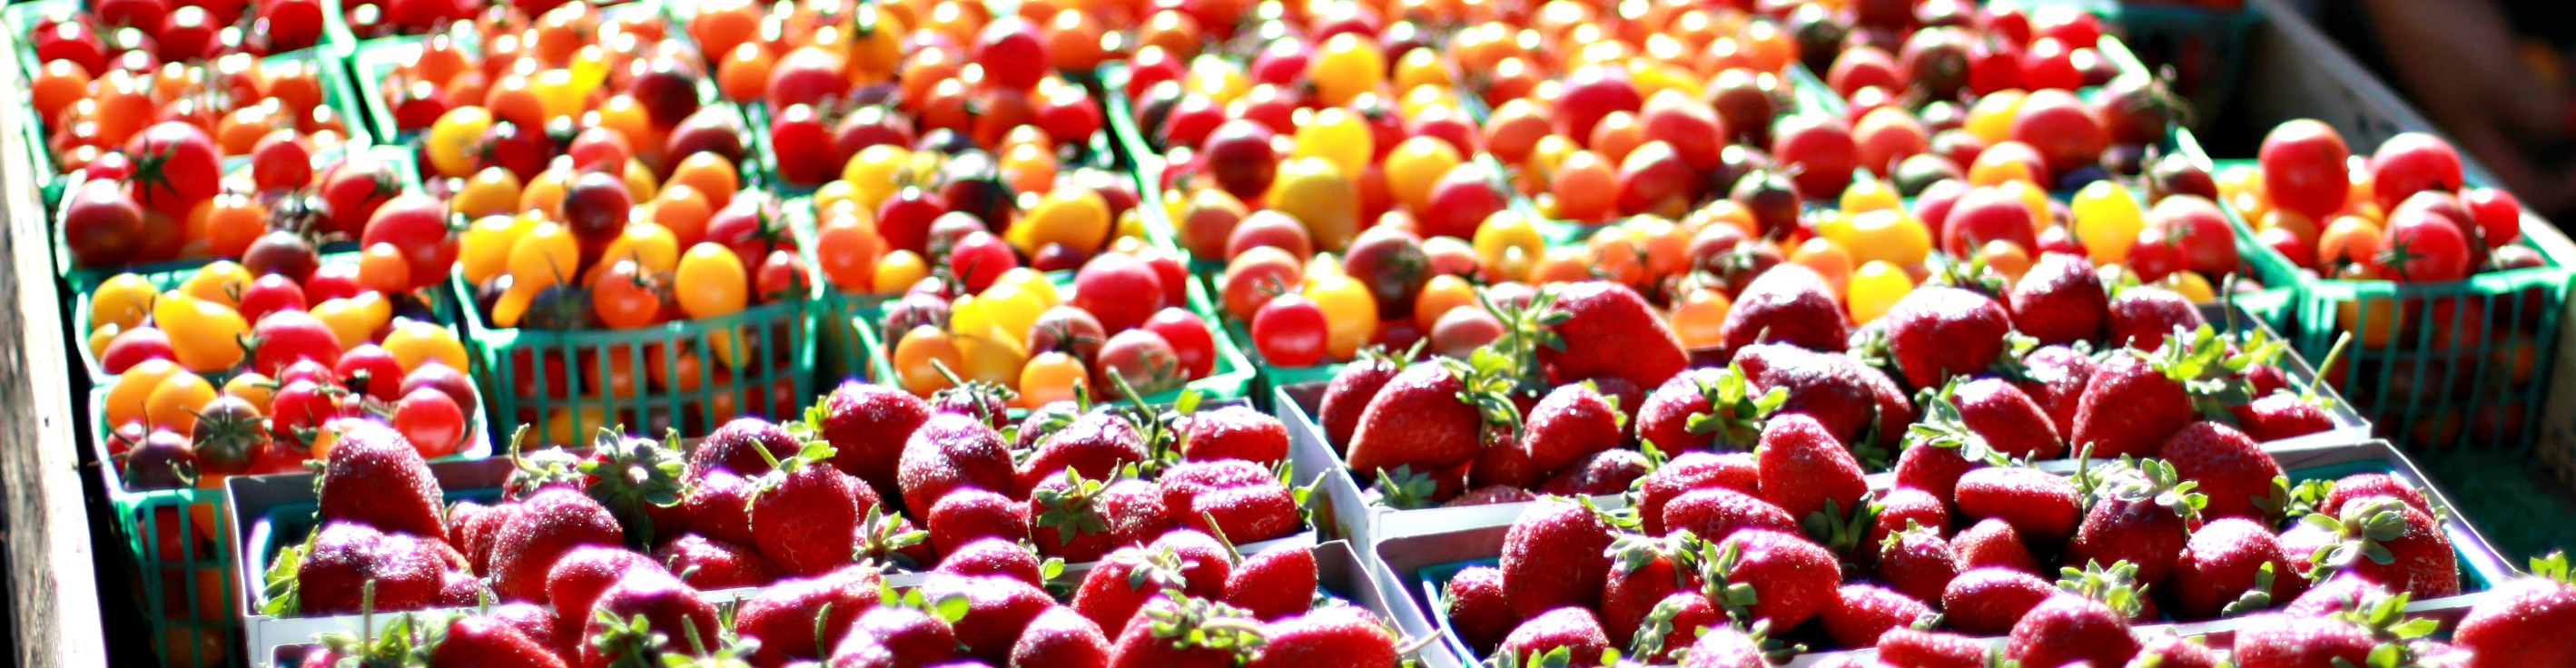 tomatoes and strawberries